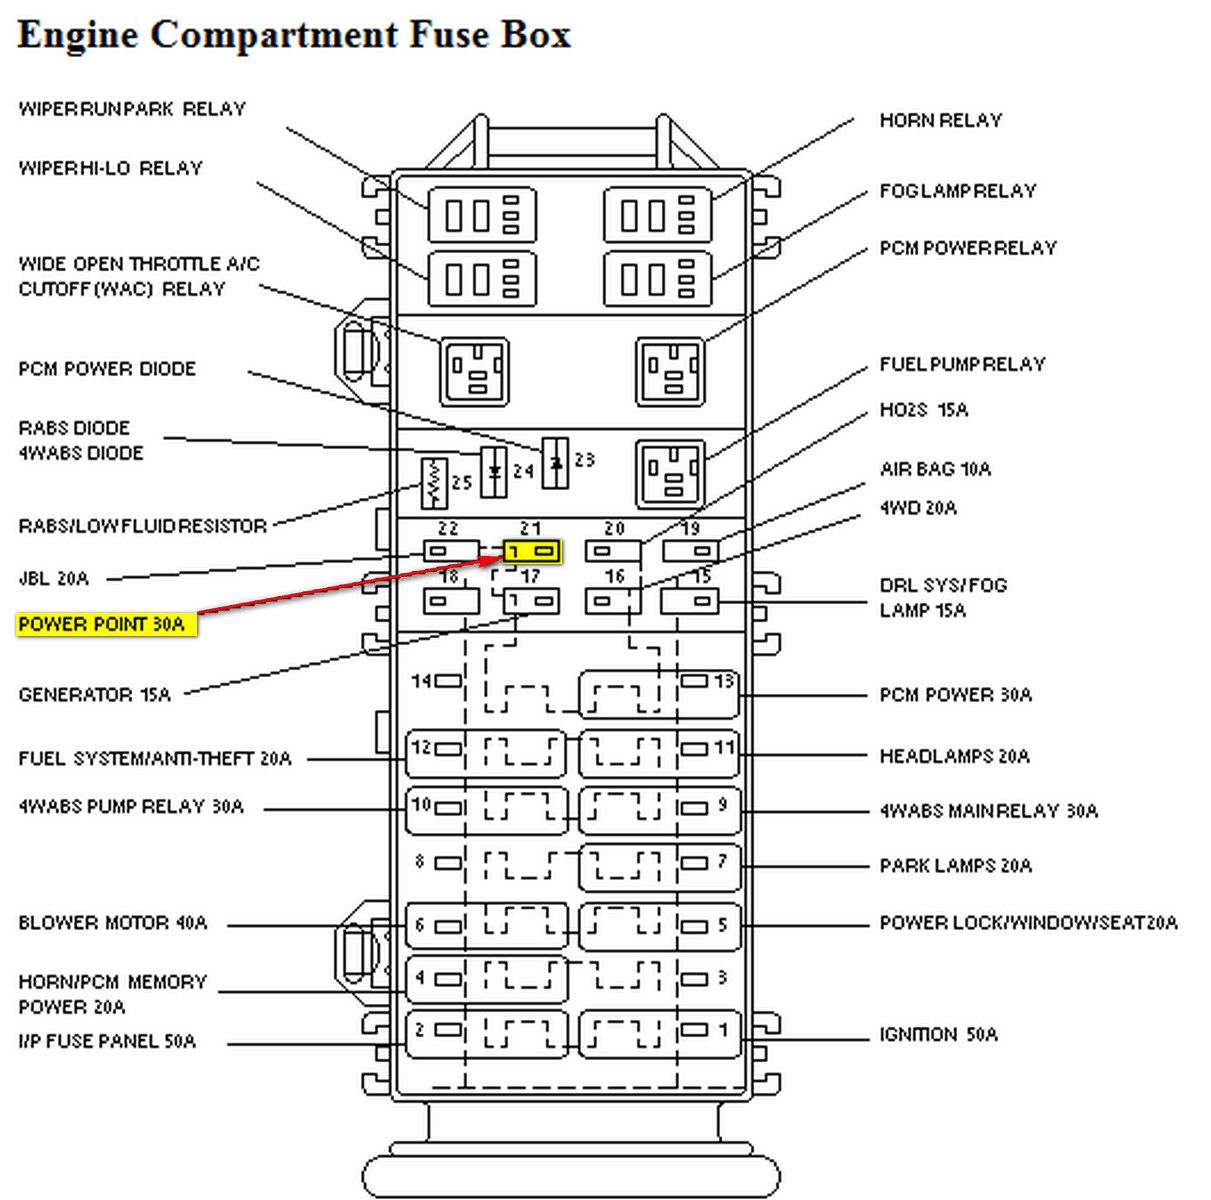 8a55967da7ae1bd251b795845886bd24 2002 ford ranger fuse diagram 1997 ford ranger fuse box diagram 2001 ford ranger power distribution box diagram at love-stories.co